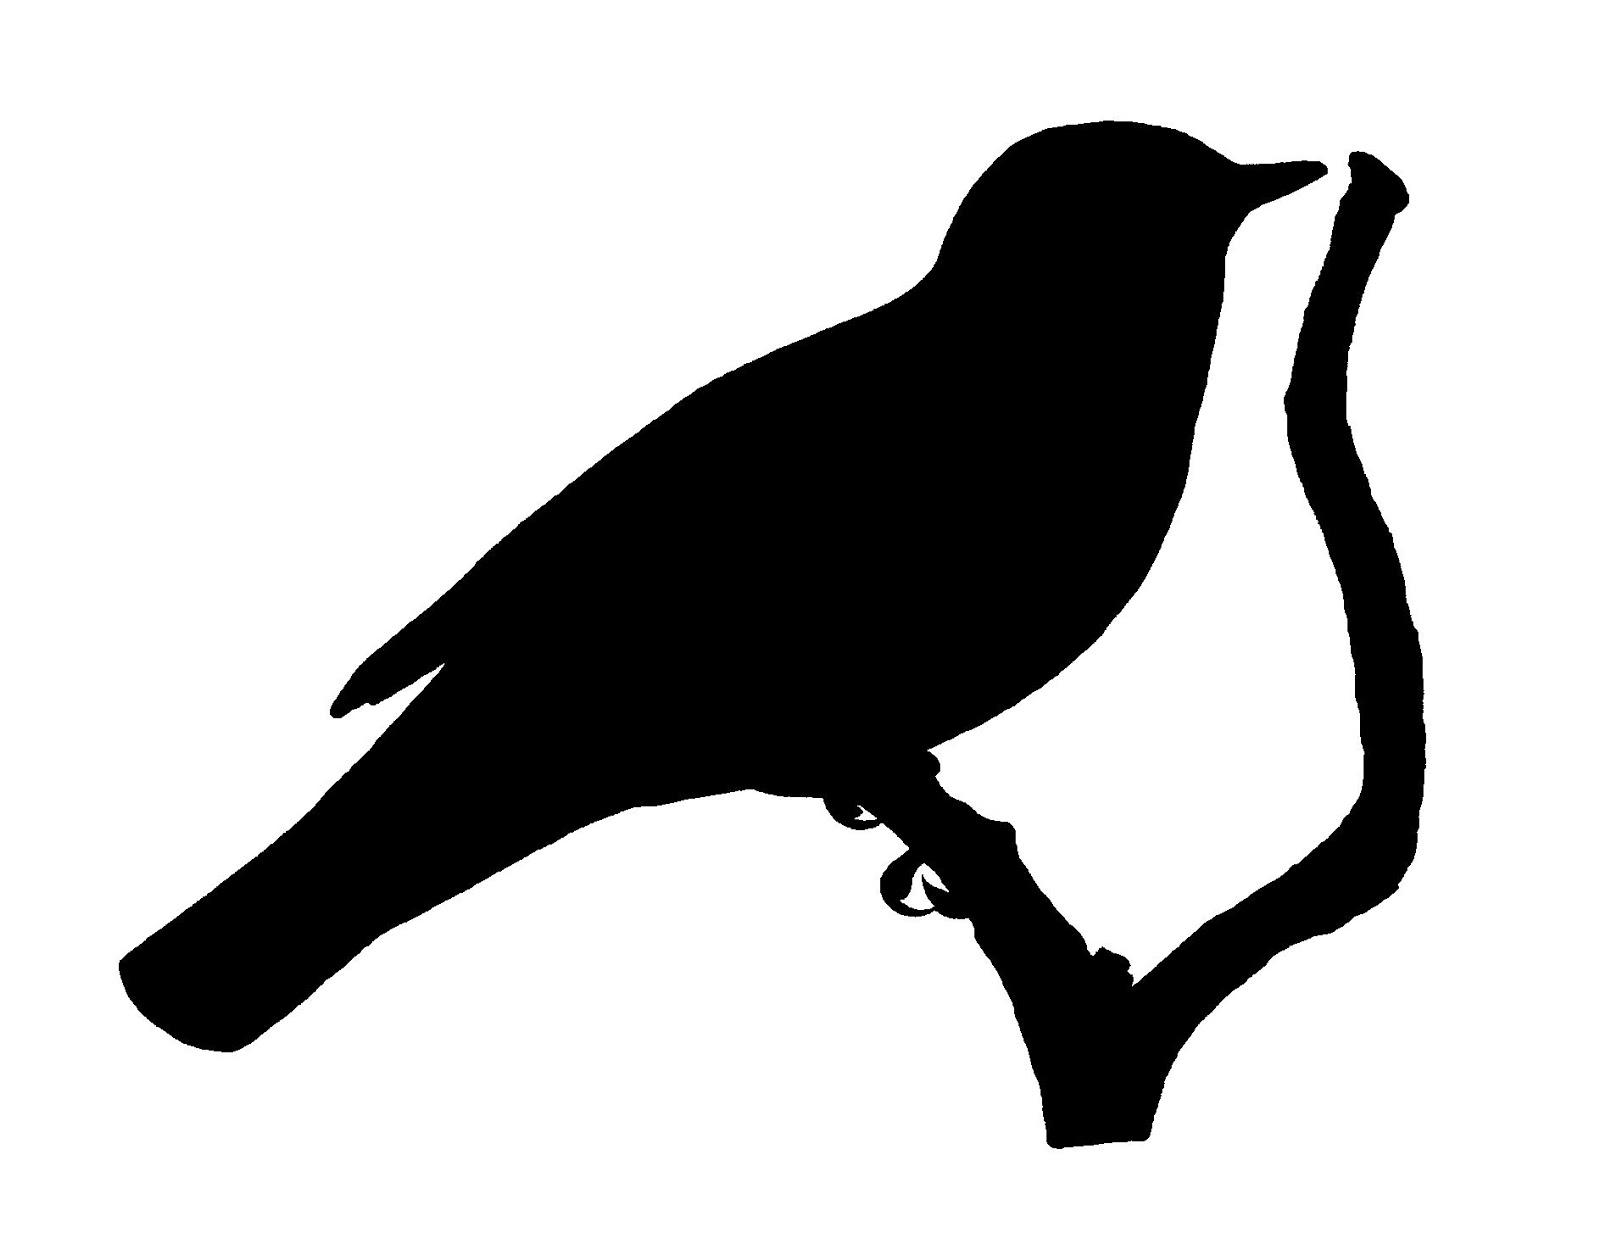 parrot silhouette bird in flight silhouette clipart best parrot silhouette